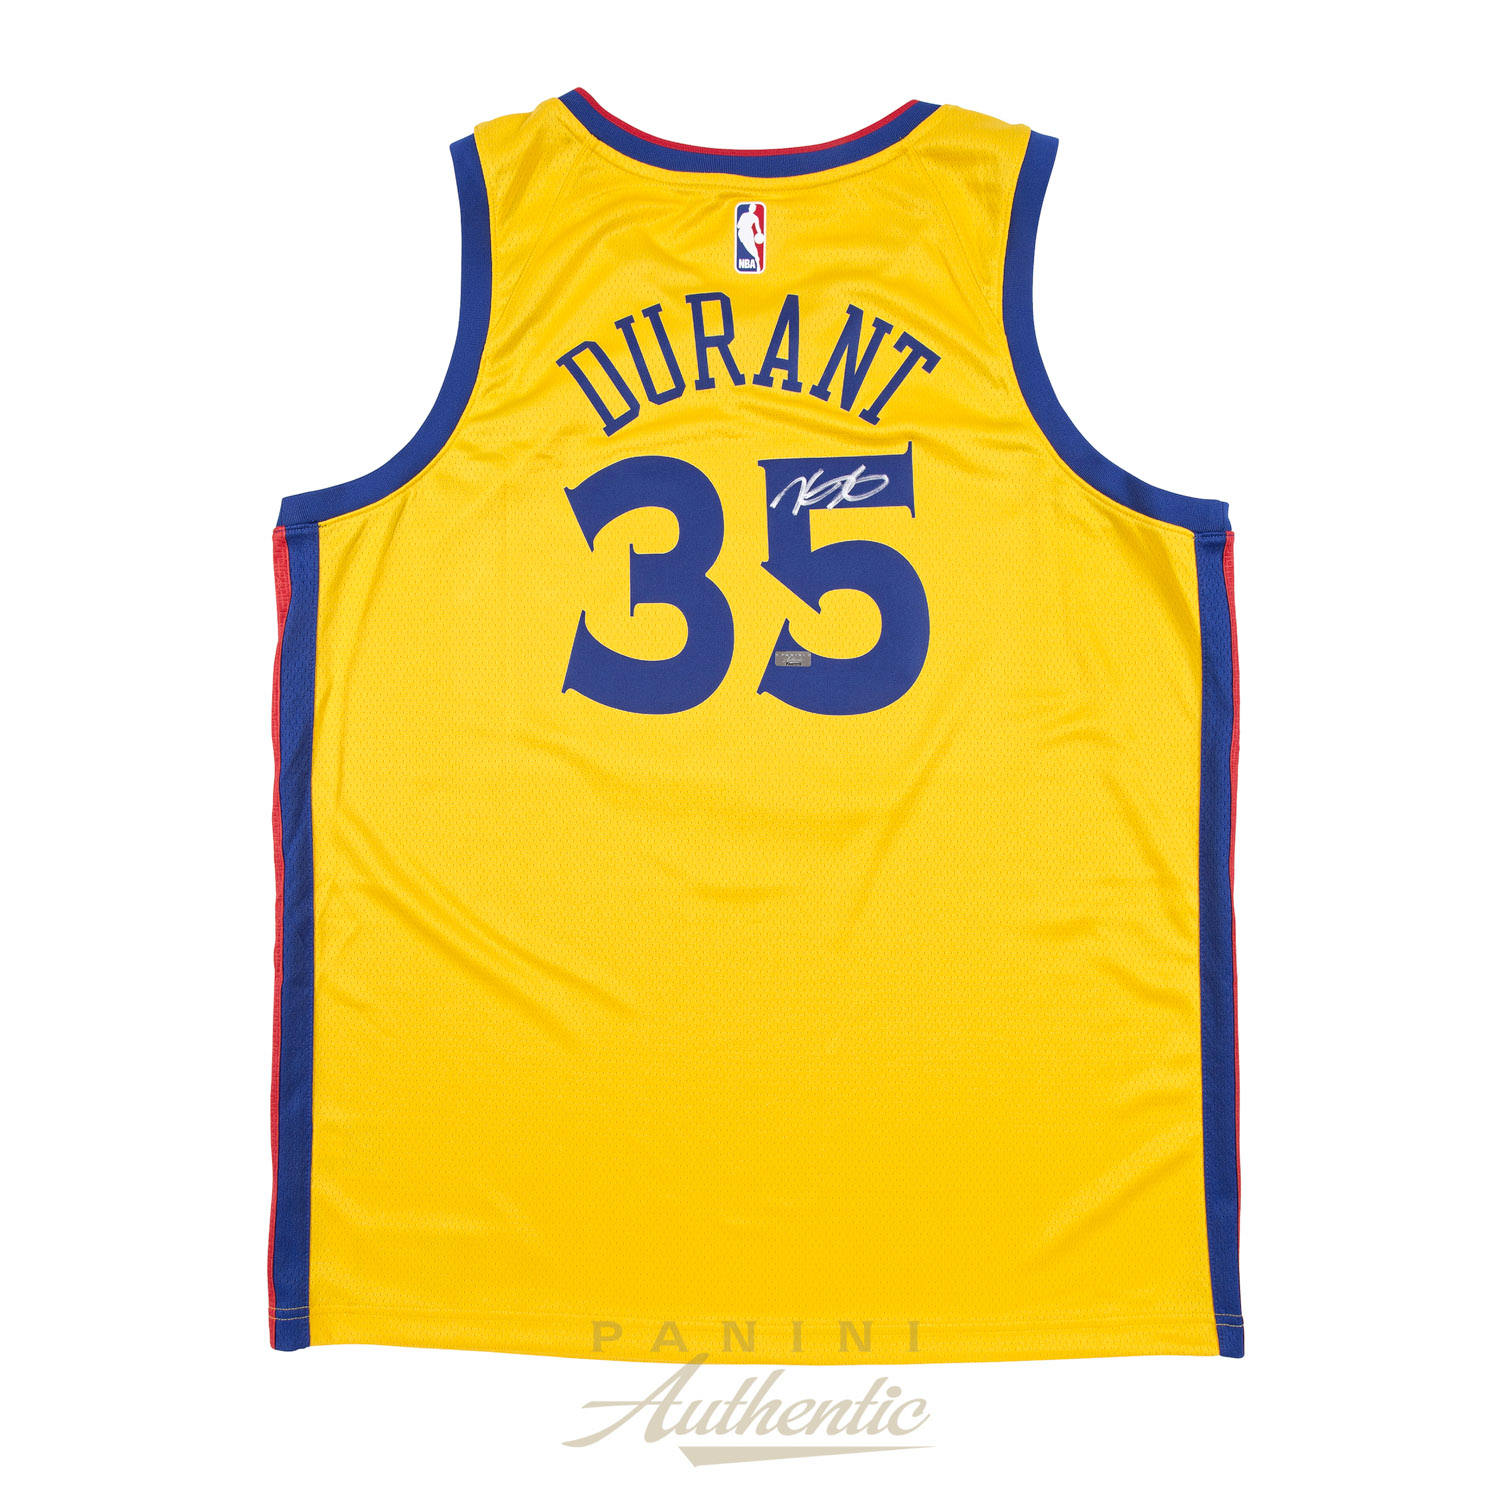 7f632e5c721 Kevin Durant Autographed Nike Golden State Warriors Yellow